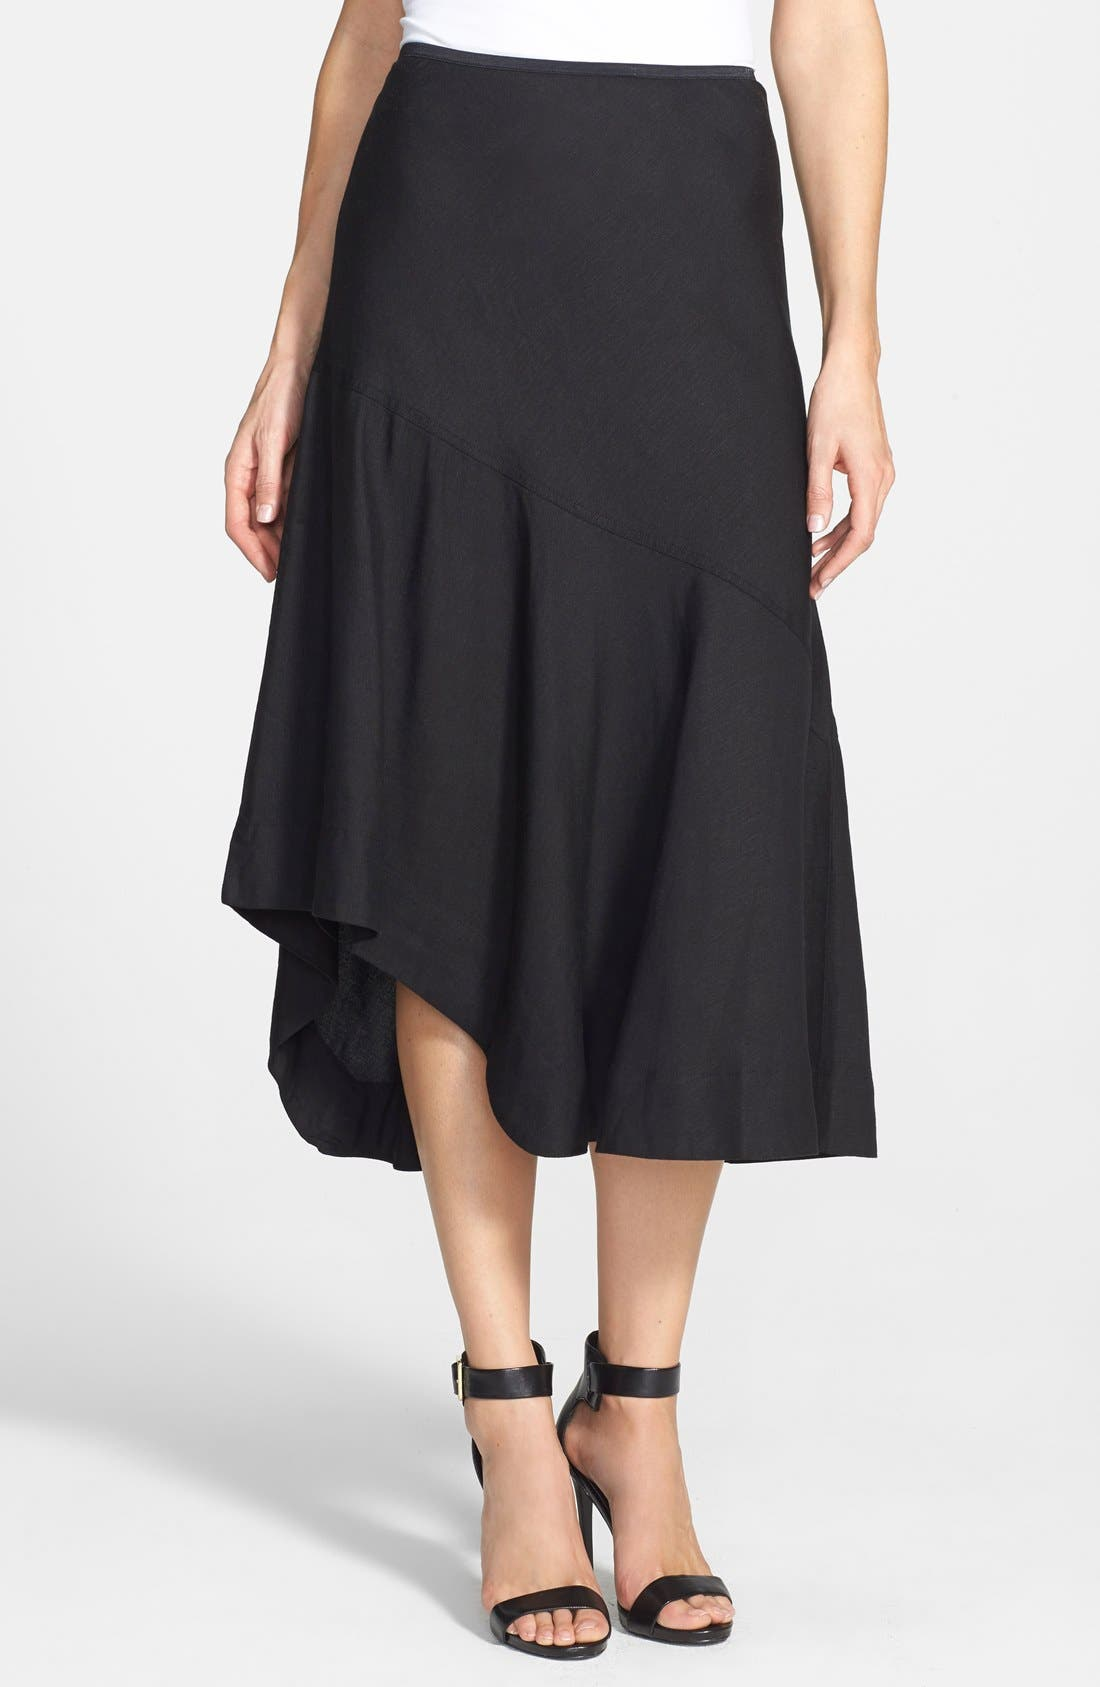 NIC+ZOE, 'The Long Engagement' Midi Skirt, Main thumbnail 1, color, 004